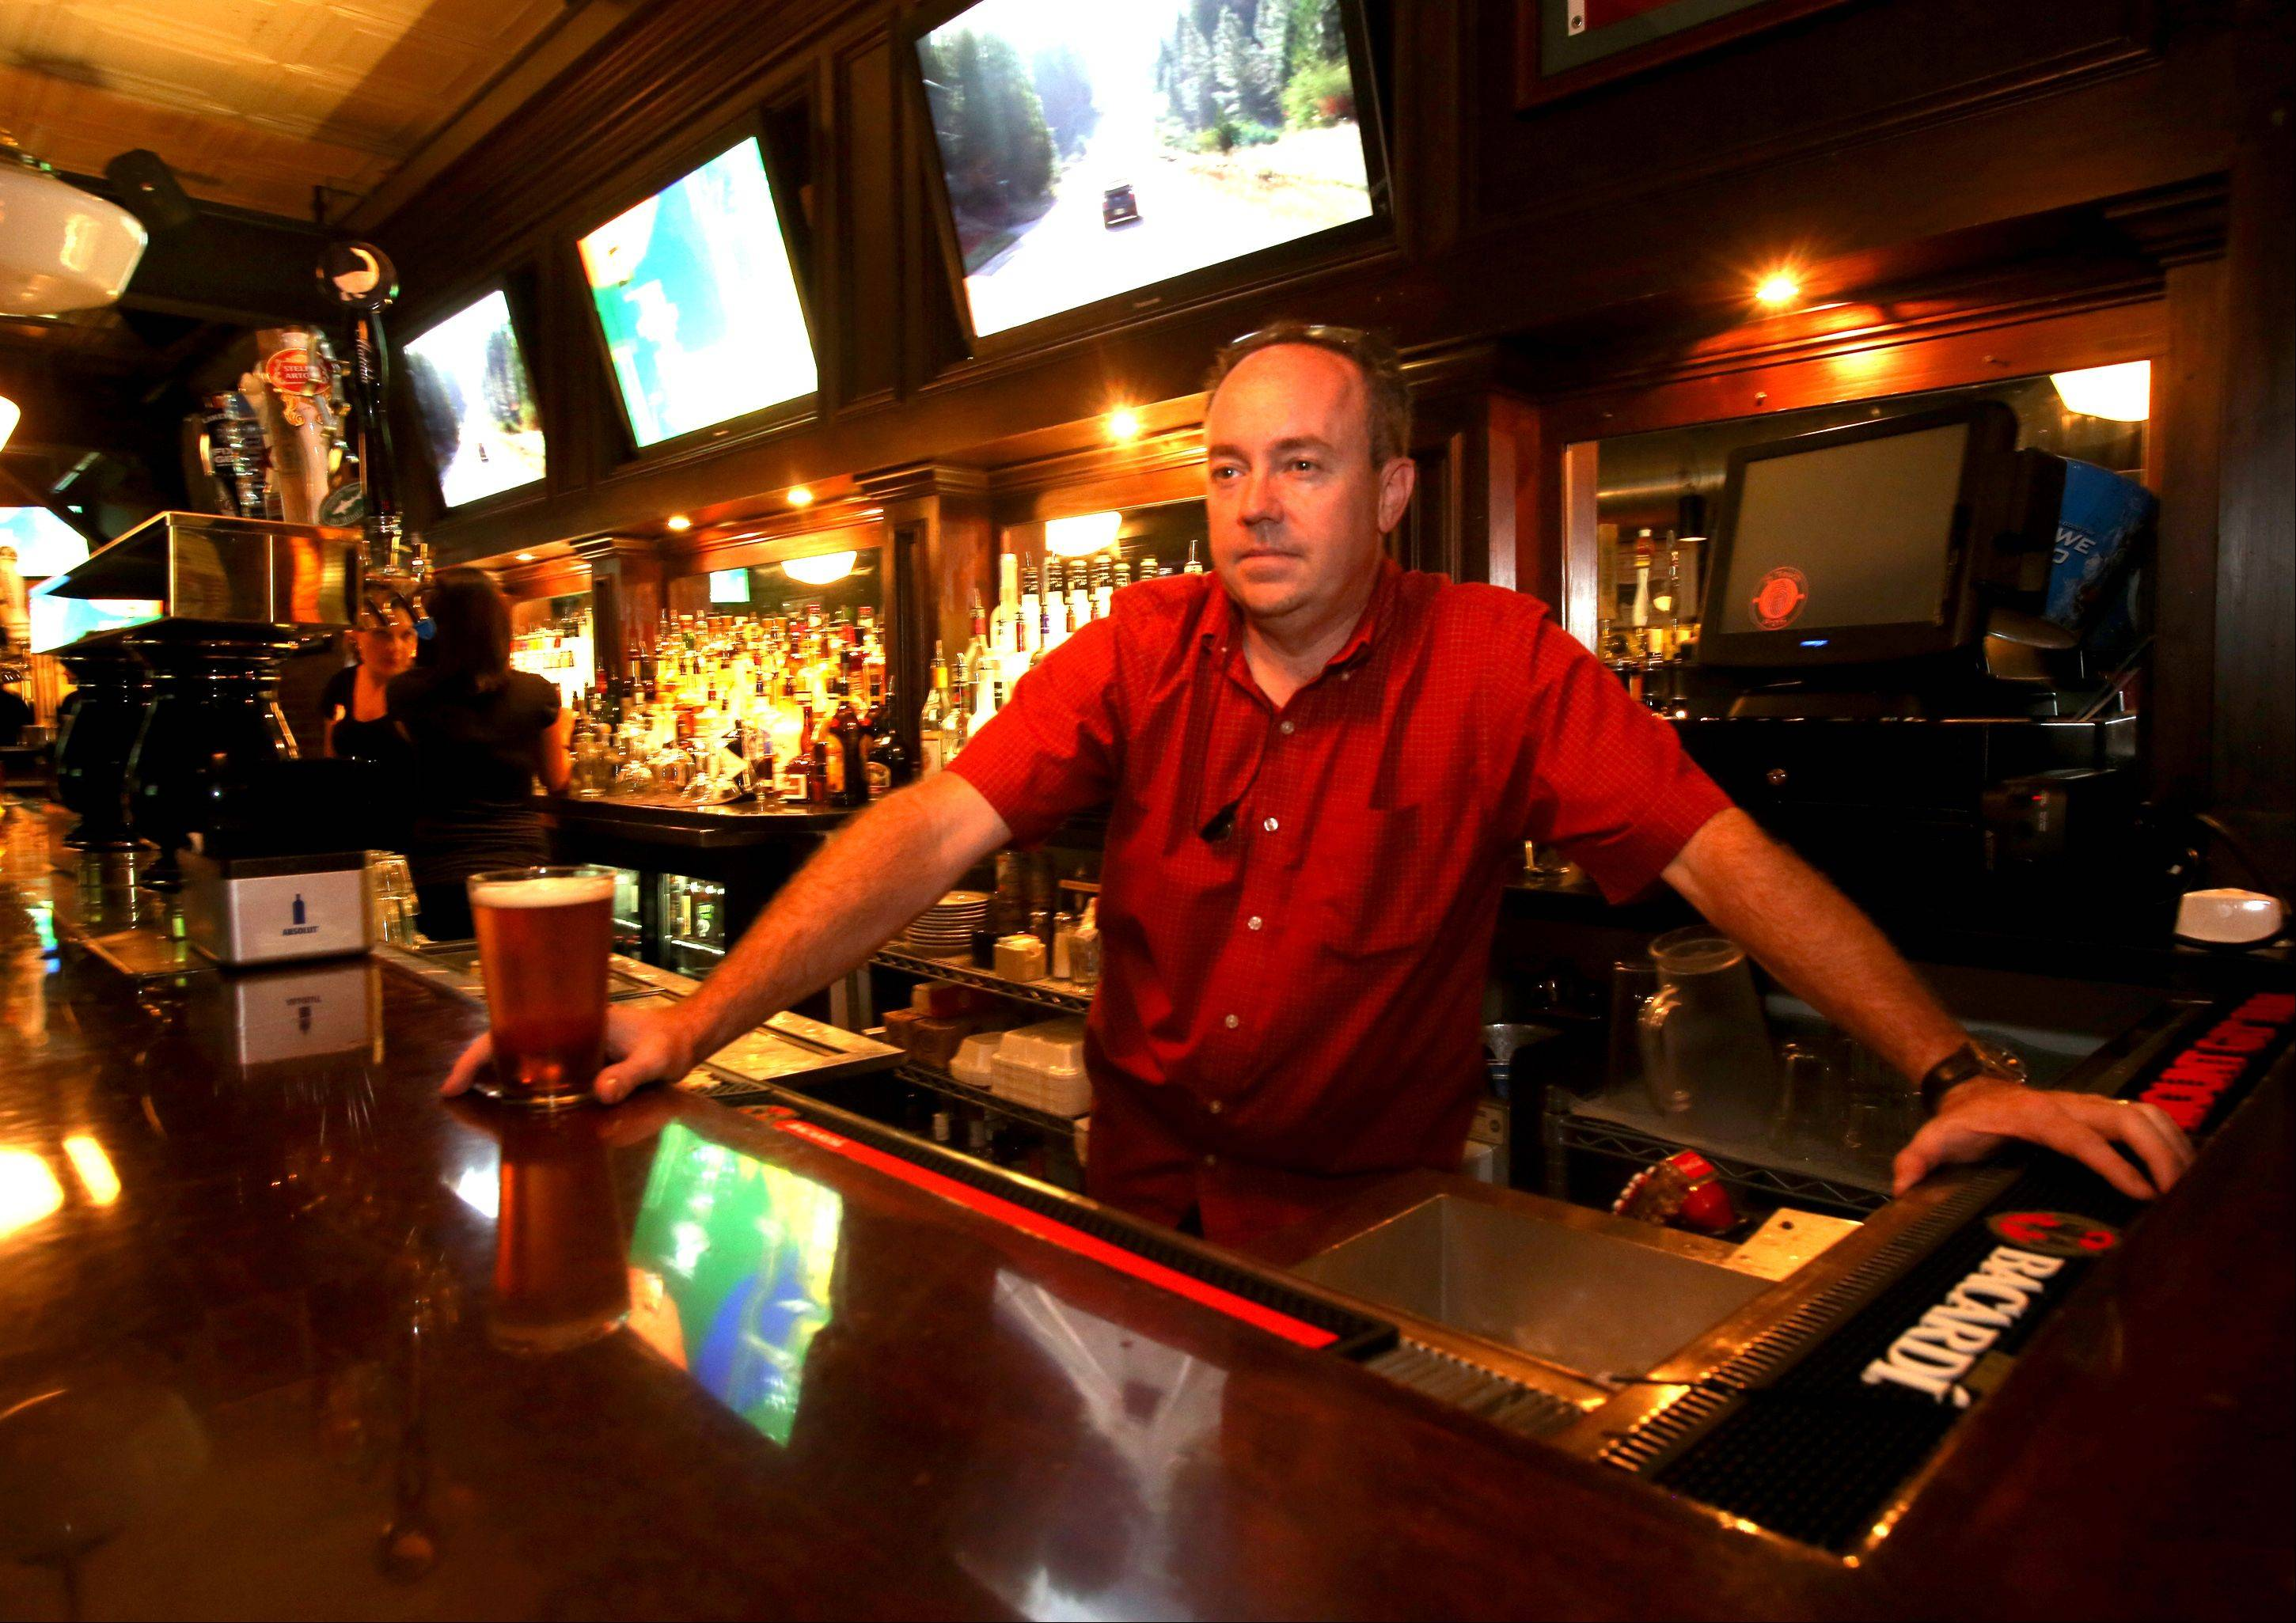 Naperville's Wise Boxer '180-degree change' from previous bar